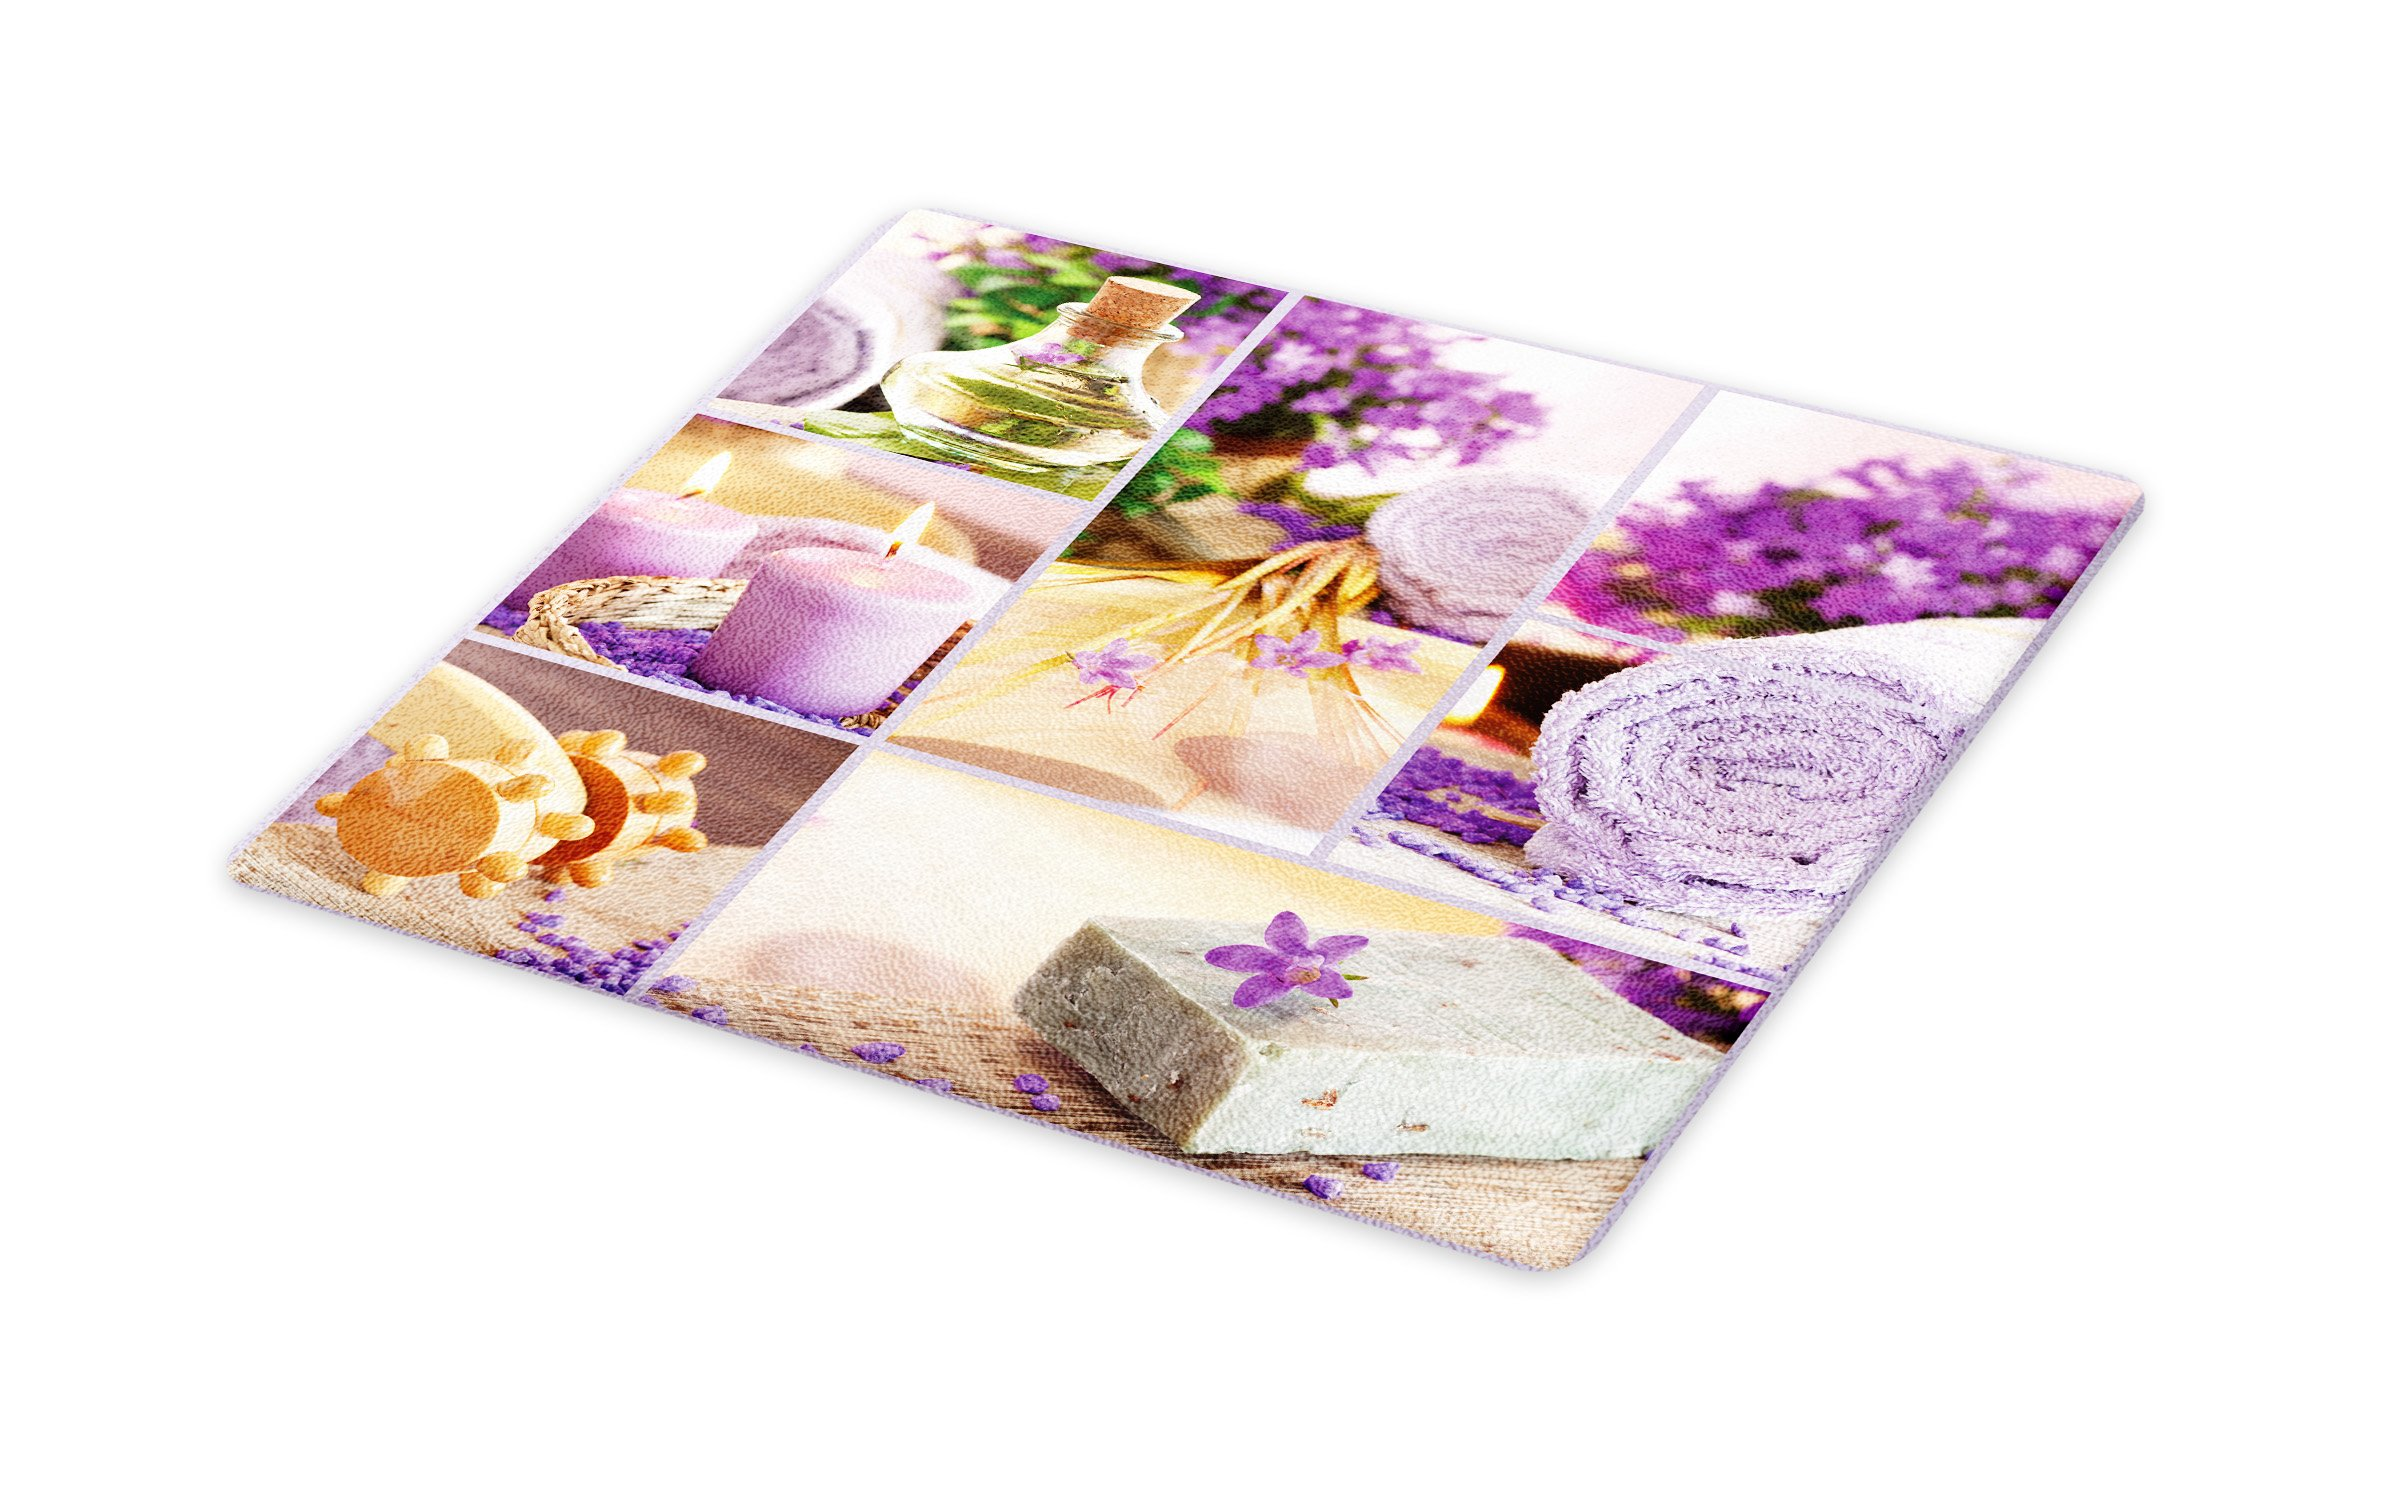 Lunarable Spa Cutting Board, Lavender Themed Relaxing Joyful Spa Day with Aromatherapy Oils Candles Relaxation, Decorative Tempered Glass Cutting and Serving Board, Large Size, Purple and White